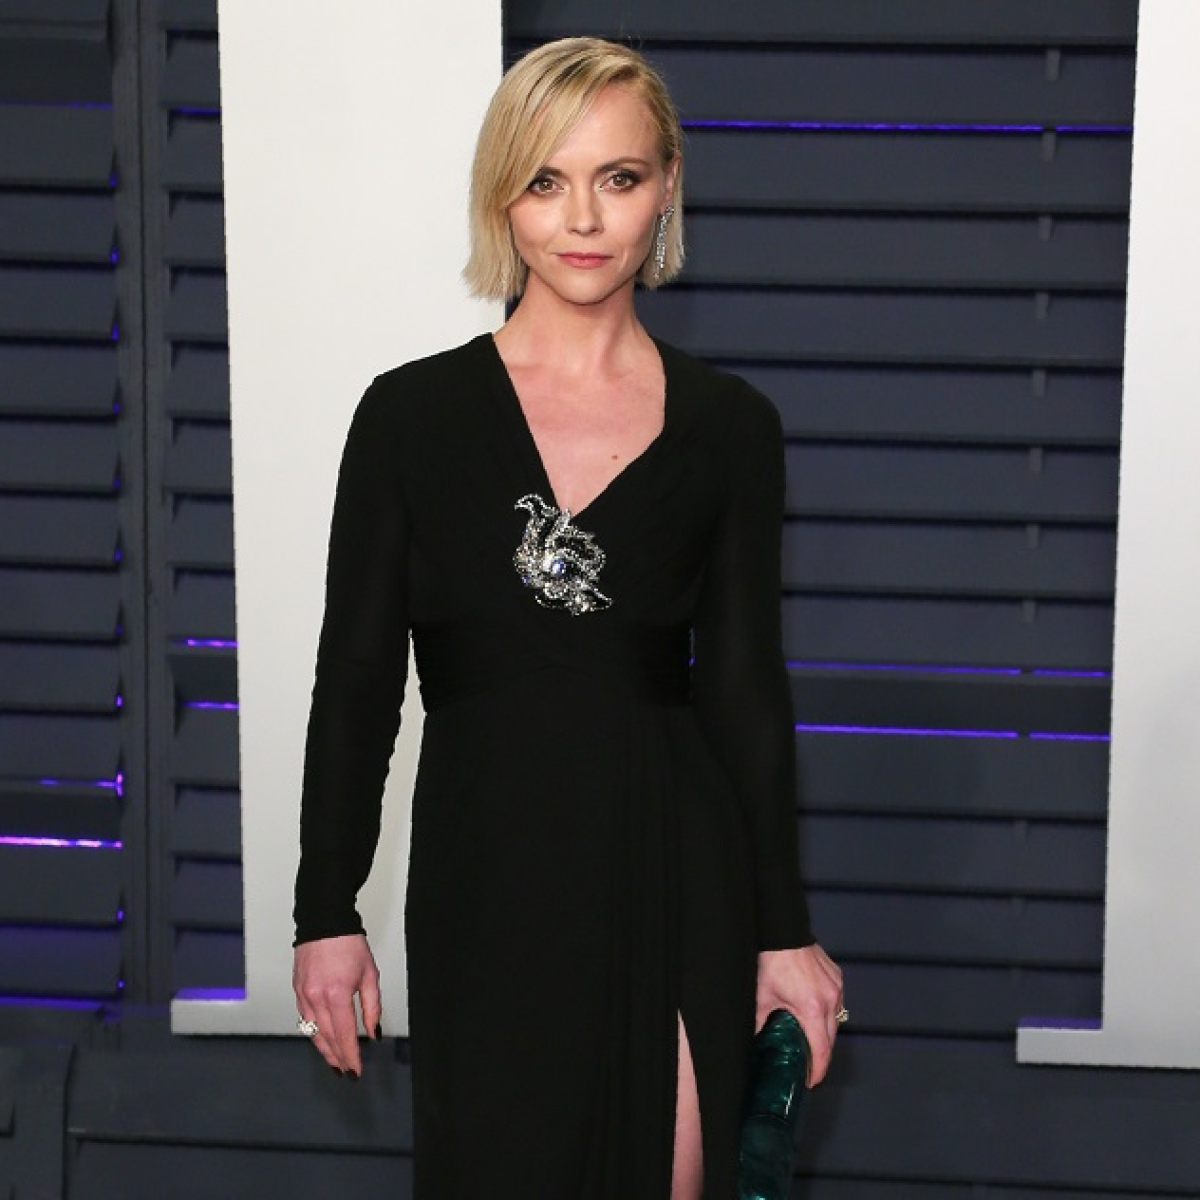 Christina Ricci presents proof of domestic violence in court